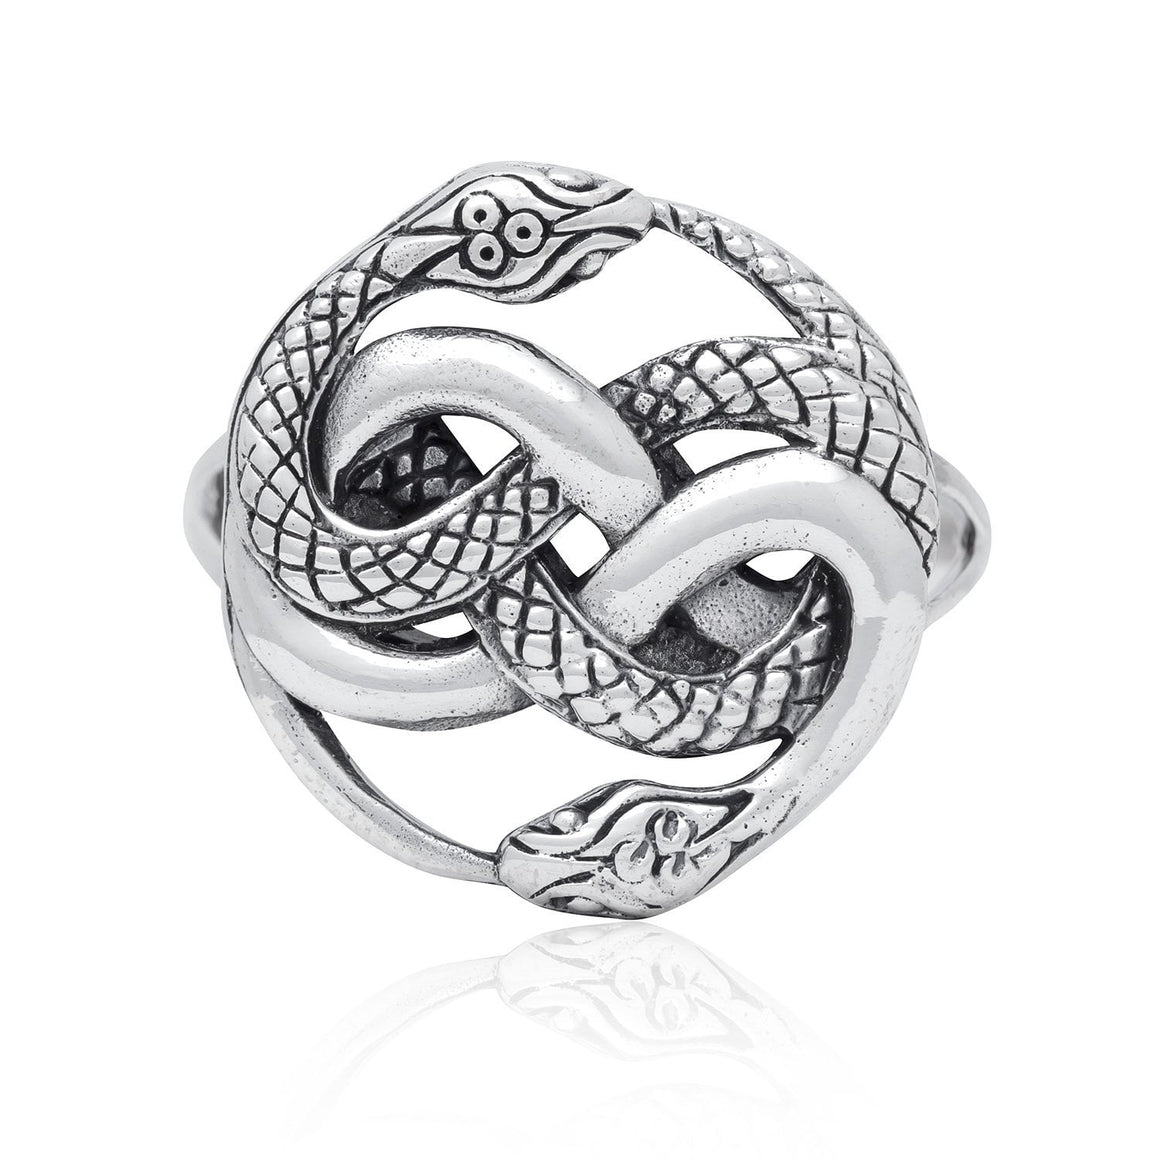 925 Sterling Silver Ouroboros Serpent Snake Infinity Eating Tail Ring - SilverMania925